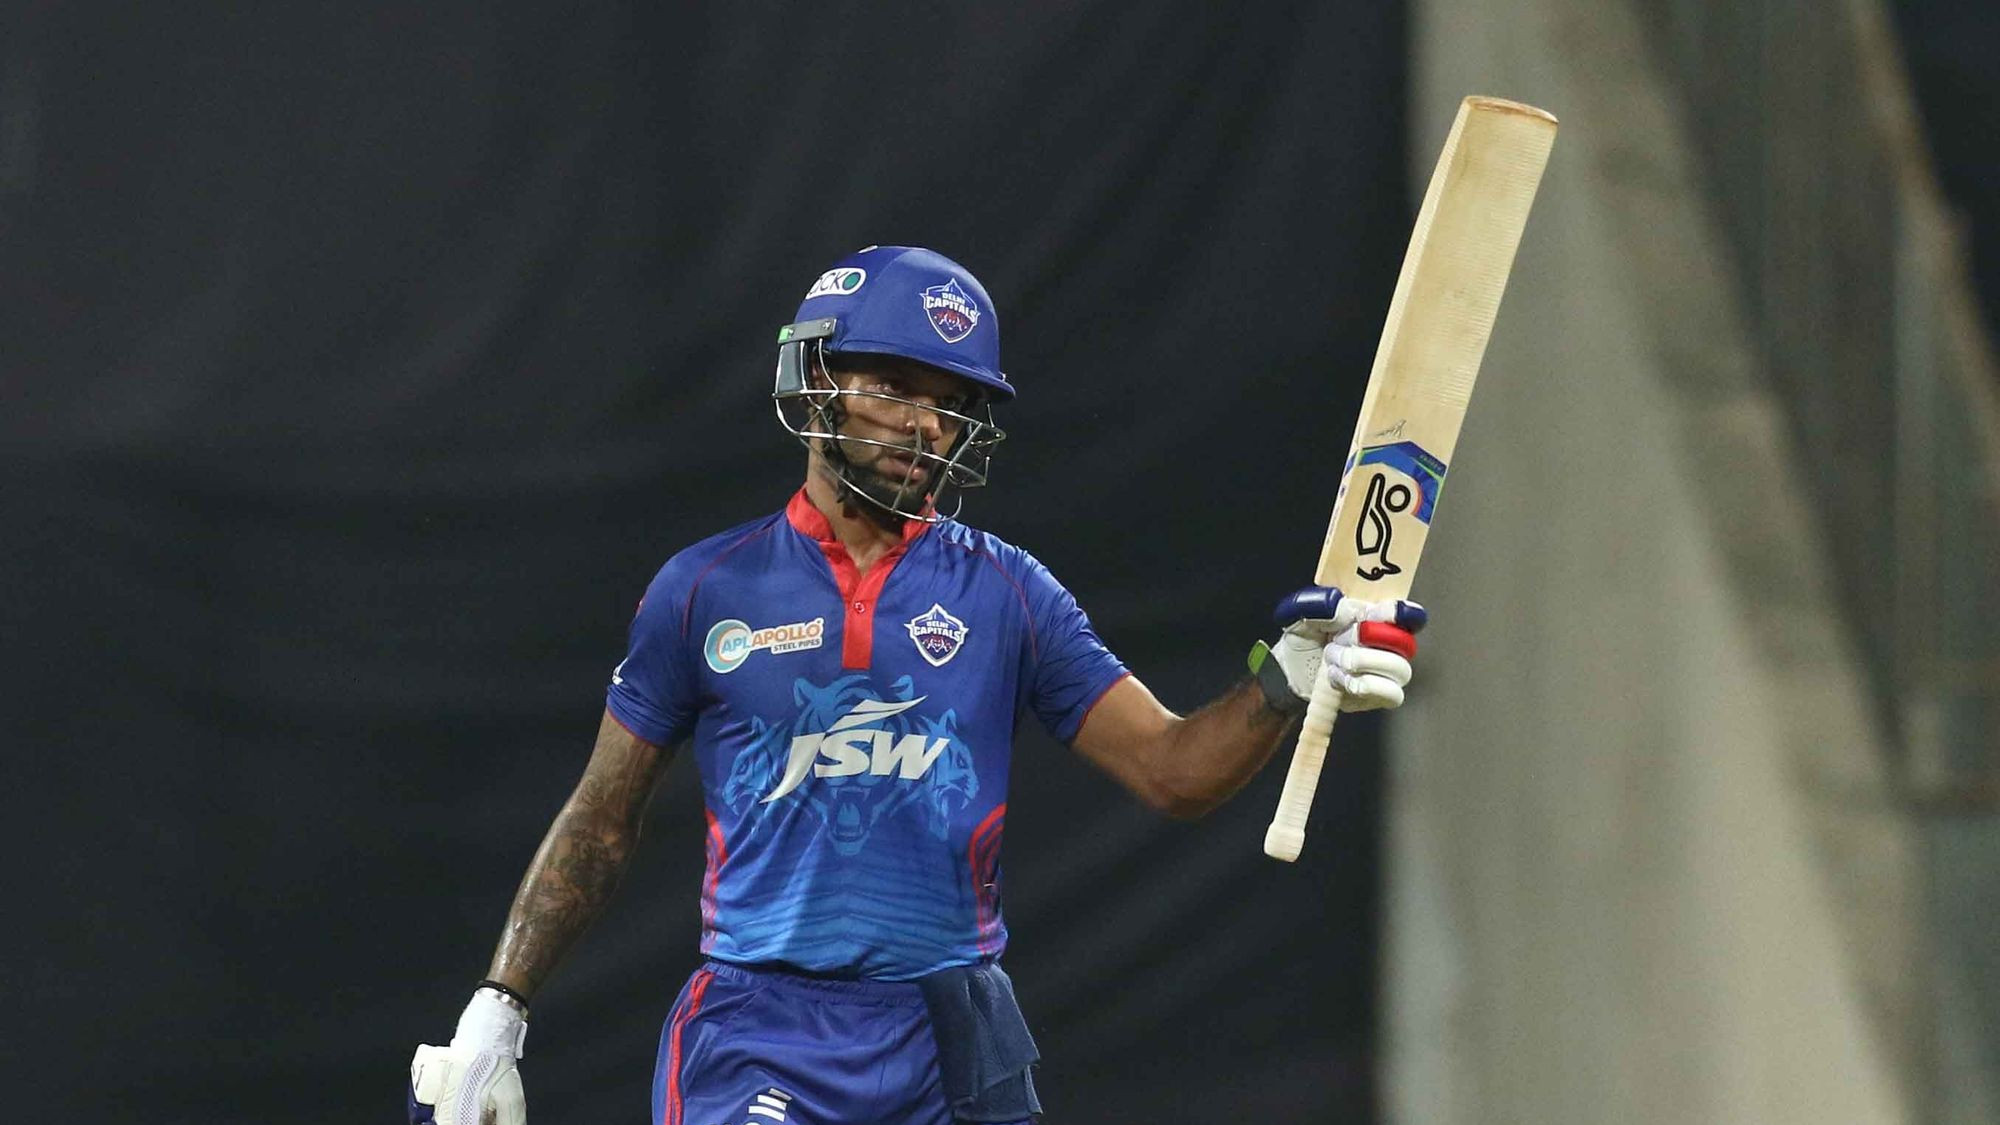 IPL 2021: Shikhar Dhawan says he's disappointed to not finish the MI game